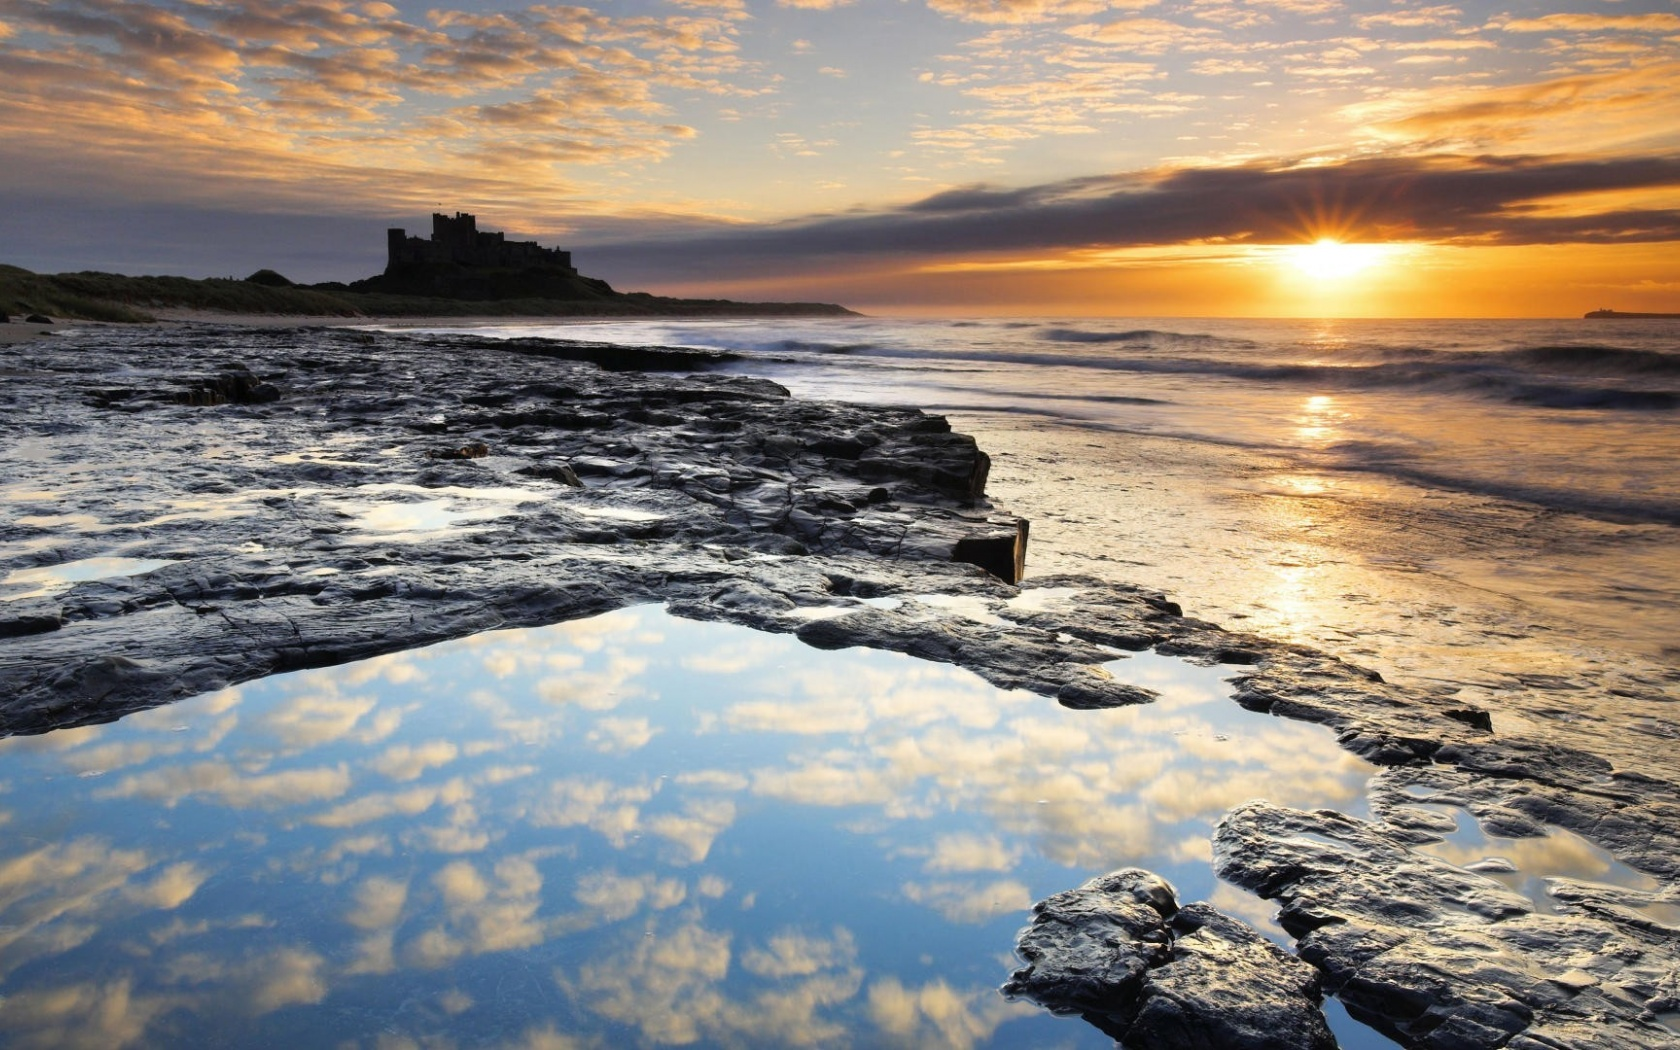 1680x1050 Bamburgh Castle silhouette, england, europe, nature